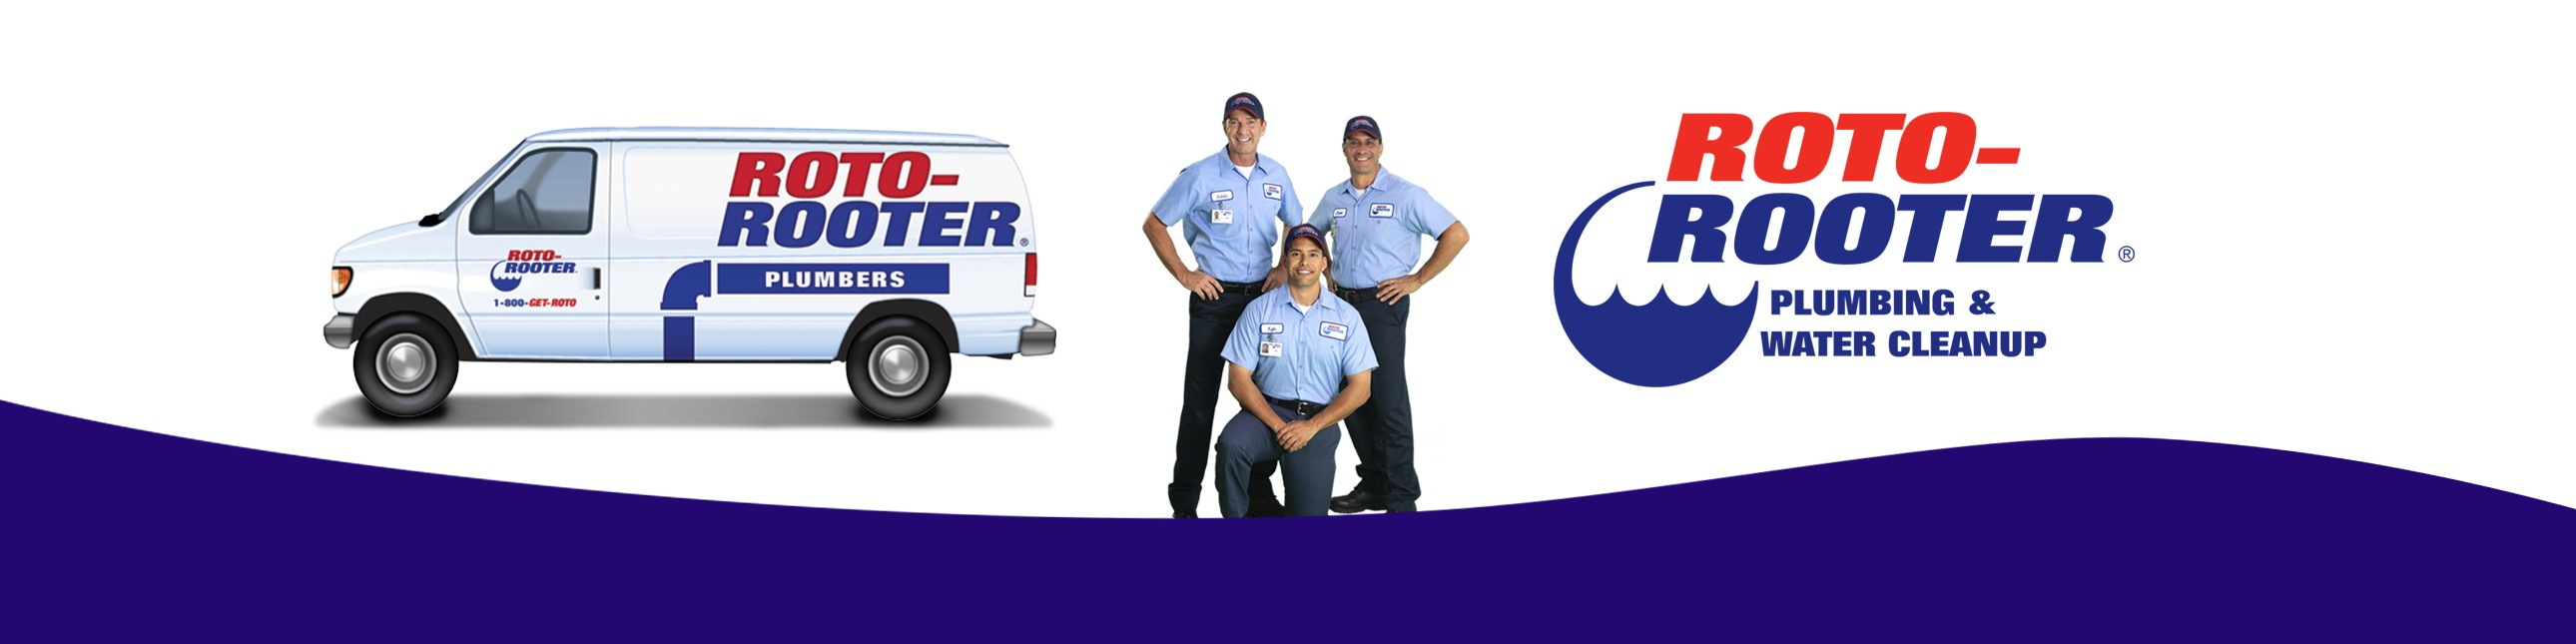 Roto-Rooter Plumbing and Drain Service | LinkedIn